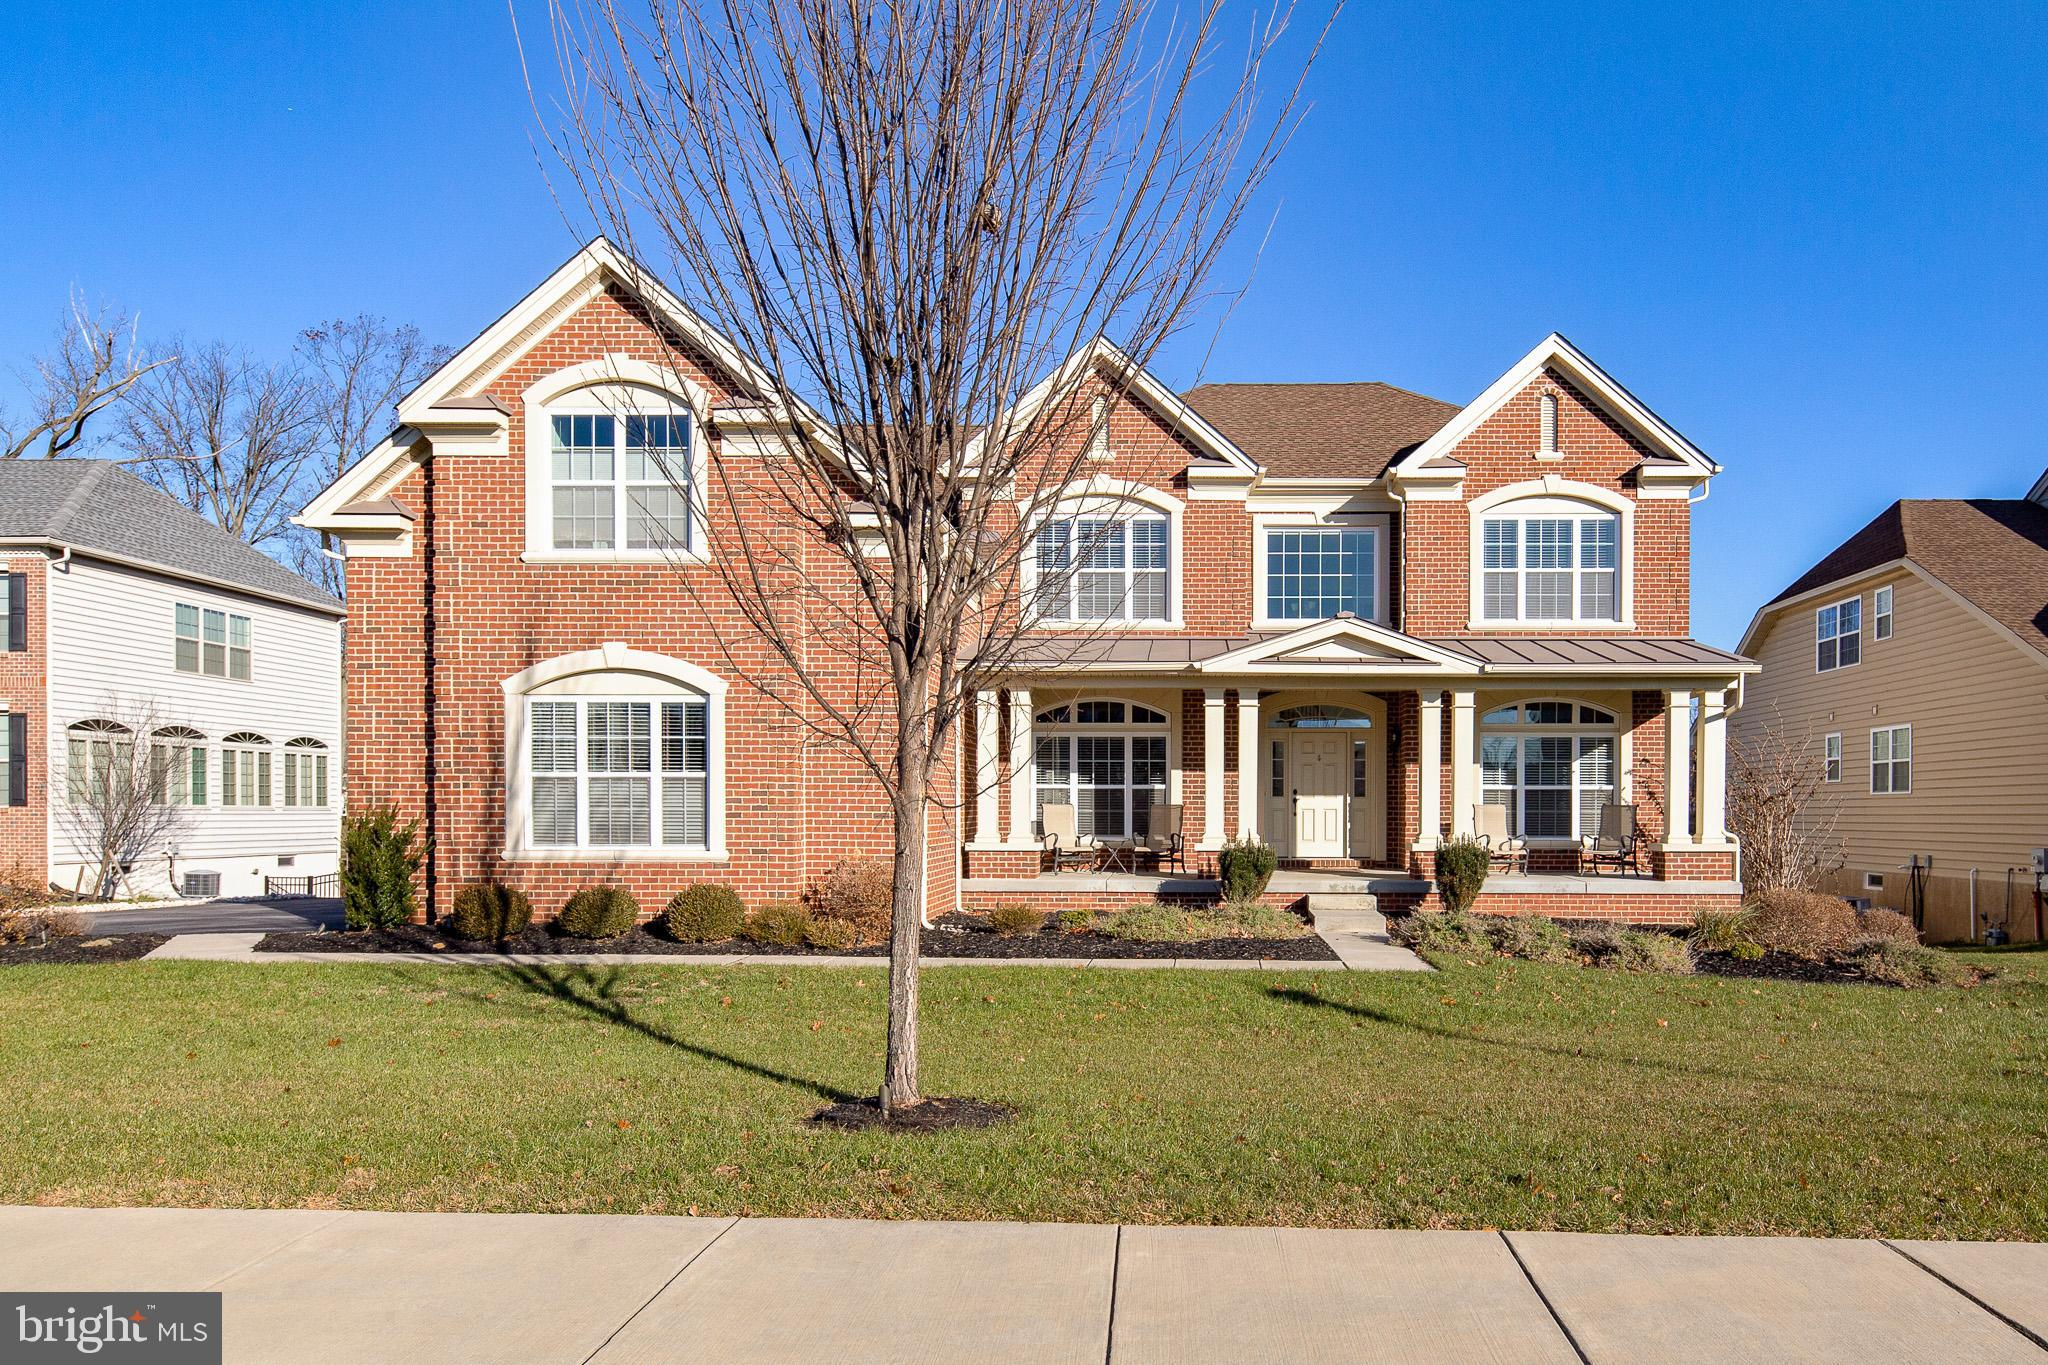 A rare find in Greenville Overlook, a new luxury Toll Brothers community, on one of the few premium